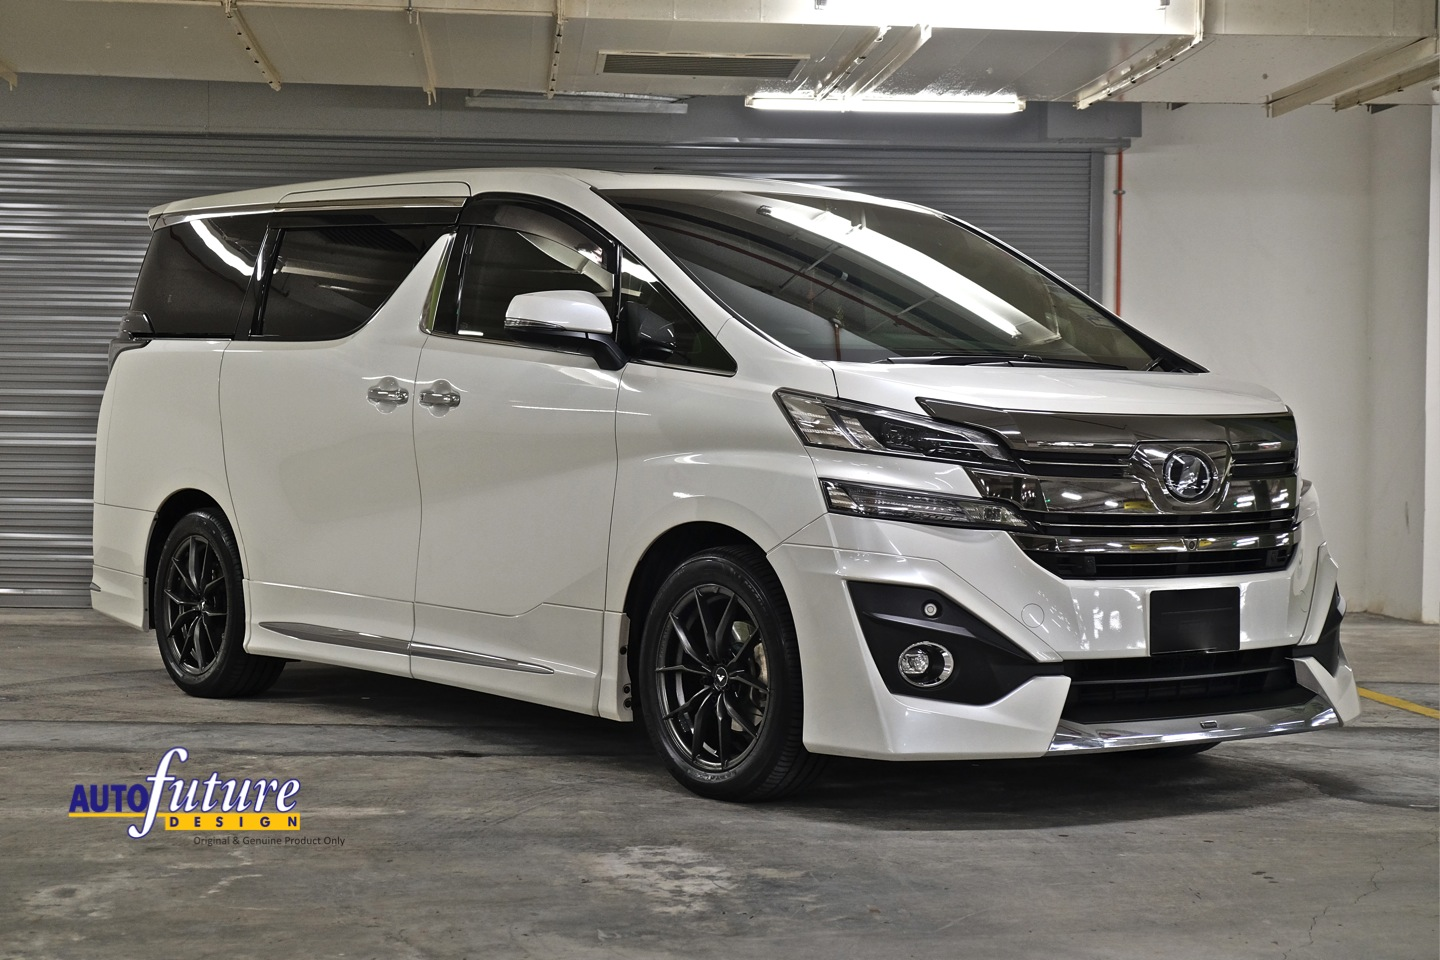 Toyota Pay By Phone >> Toyota Vellfire Equipped With Vorsteiner V-FF 108 Wheels ...